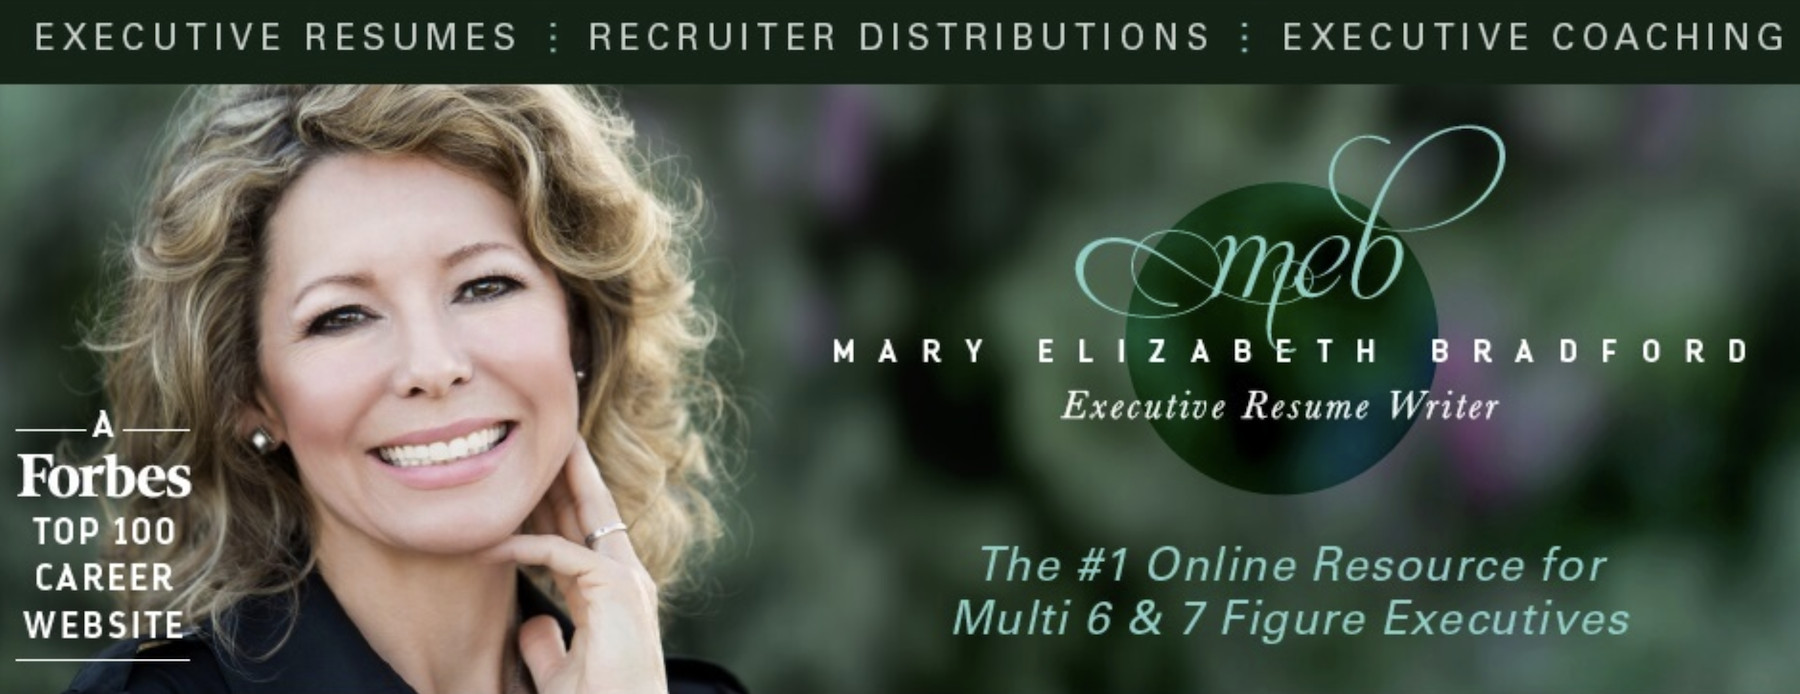 Mary Elizabeth Bradford - Reviews, Cost, and More